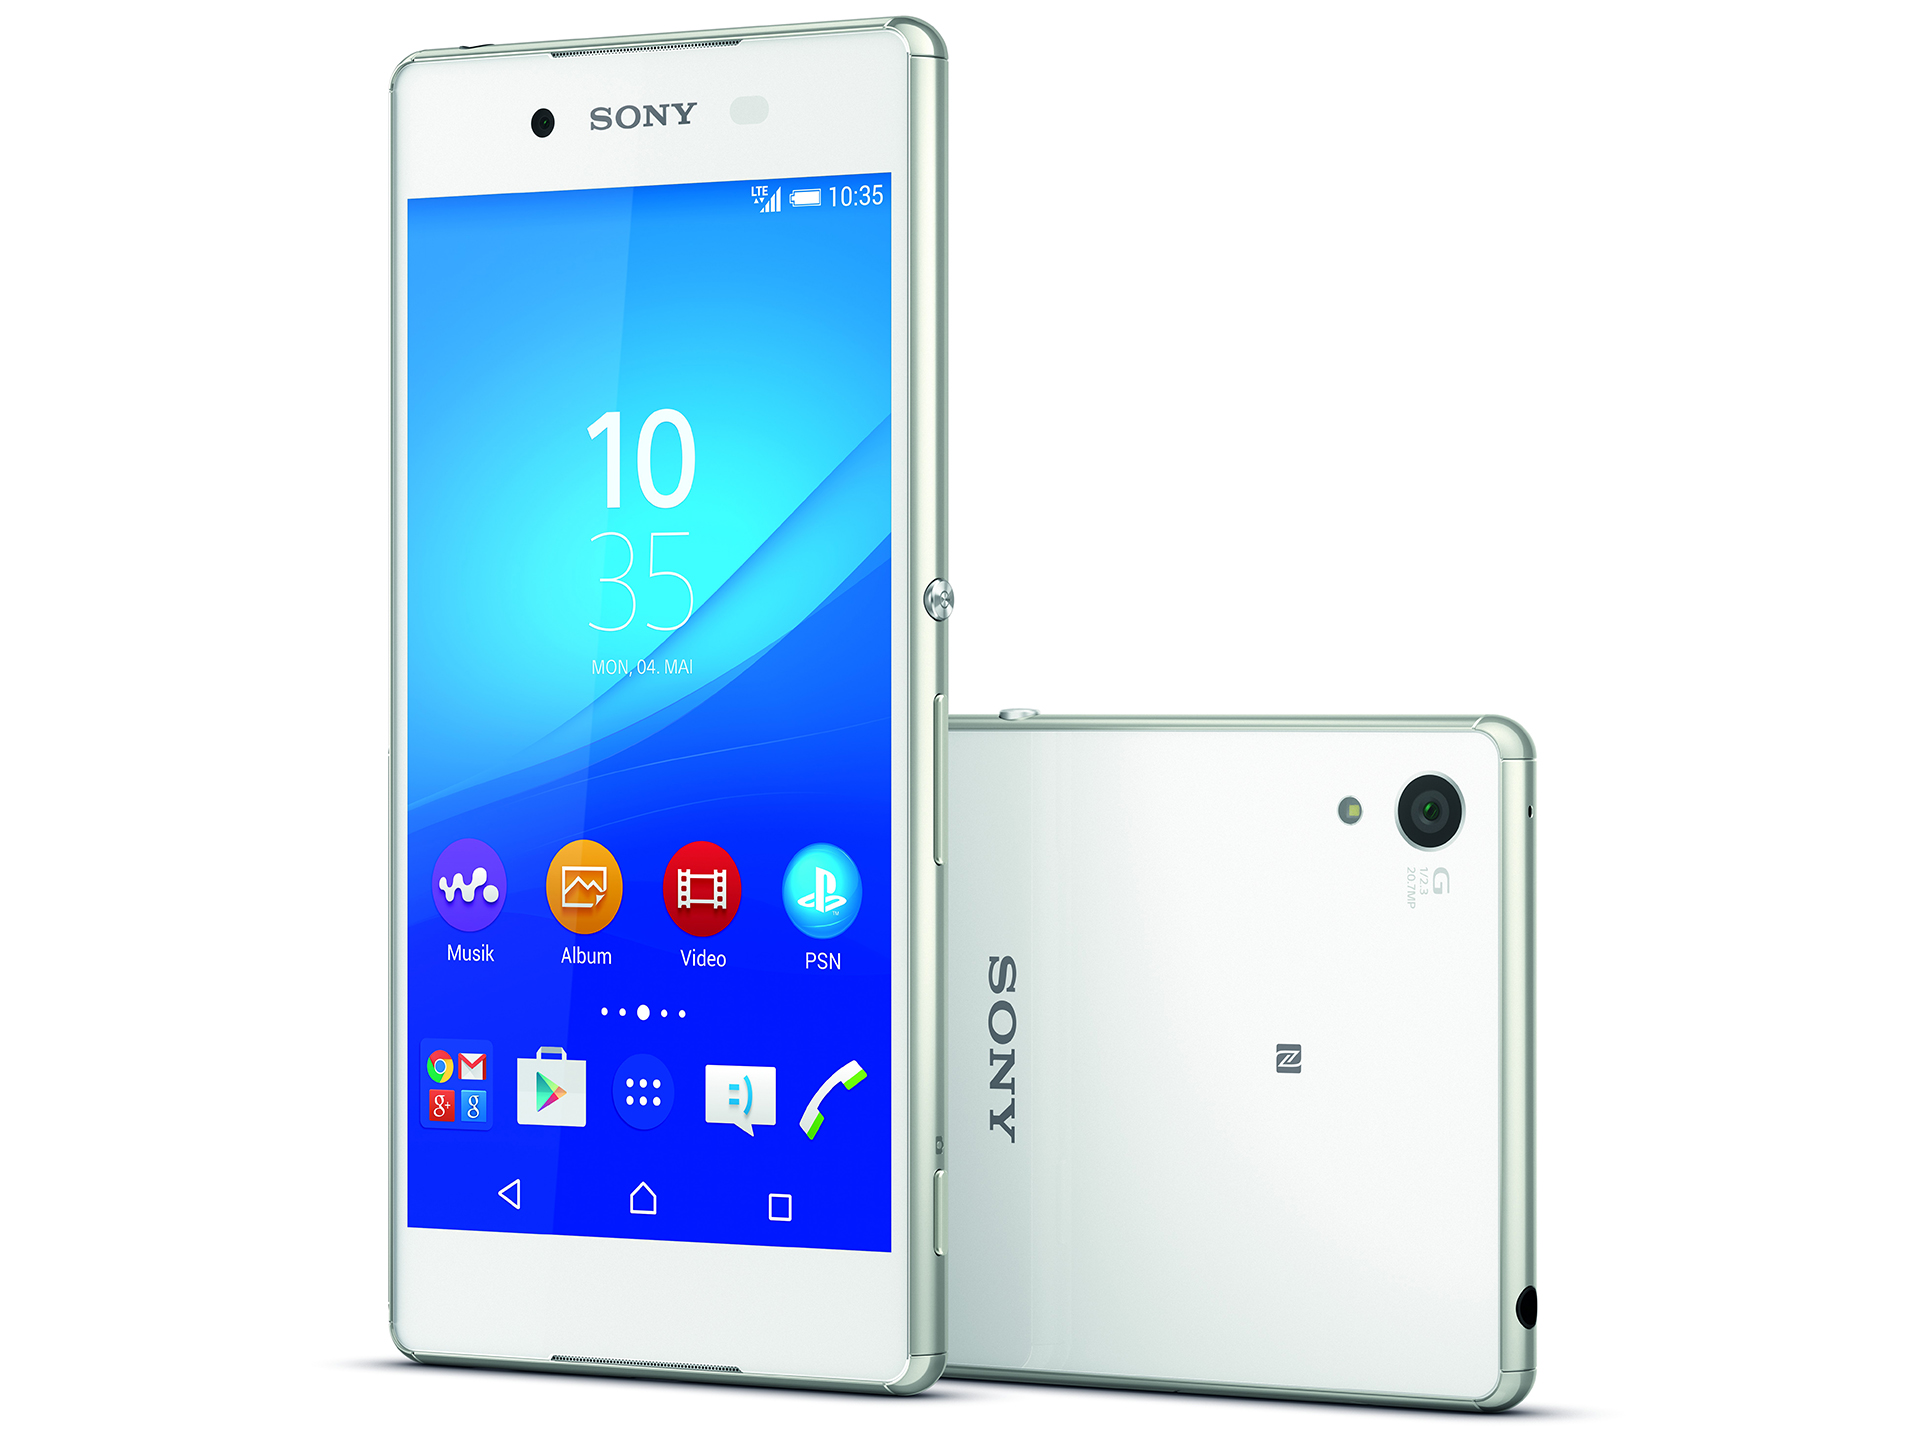 Sony Xperia Z3 Plus Smartphone Review - NotebookCheck.net ...